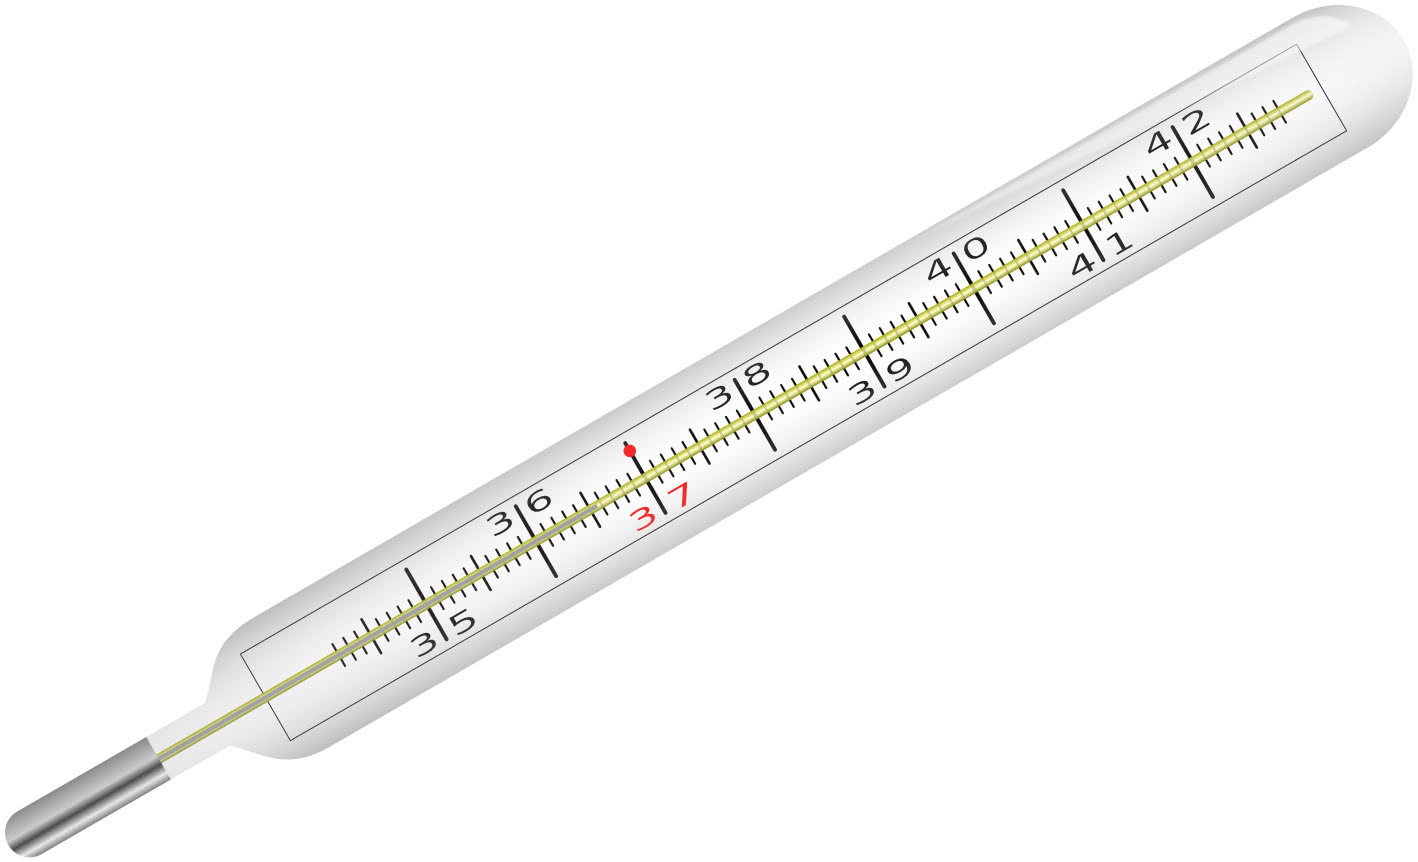 thermometer 3 - /weather/weather_instruments/thermometer/thermometer_3 ...